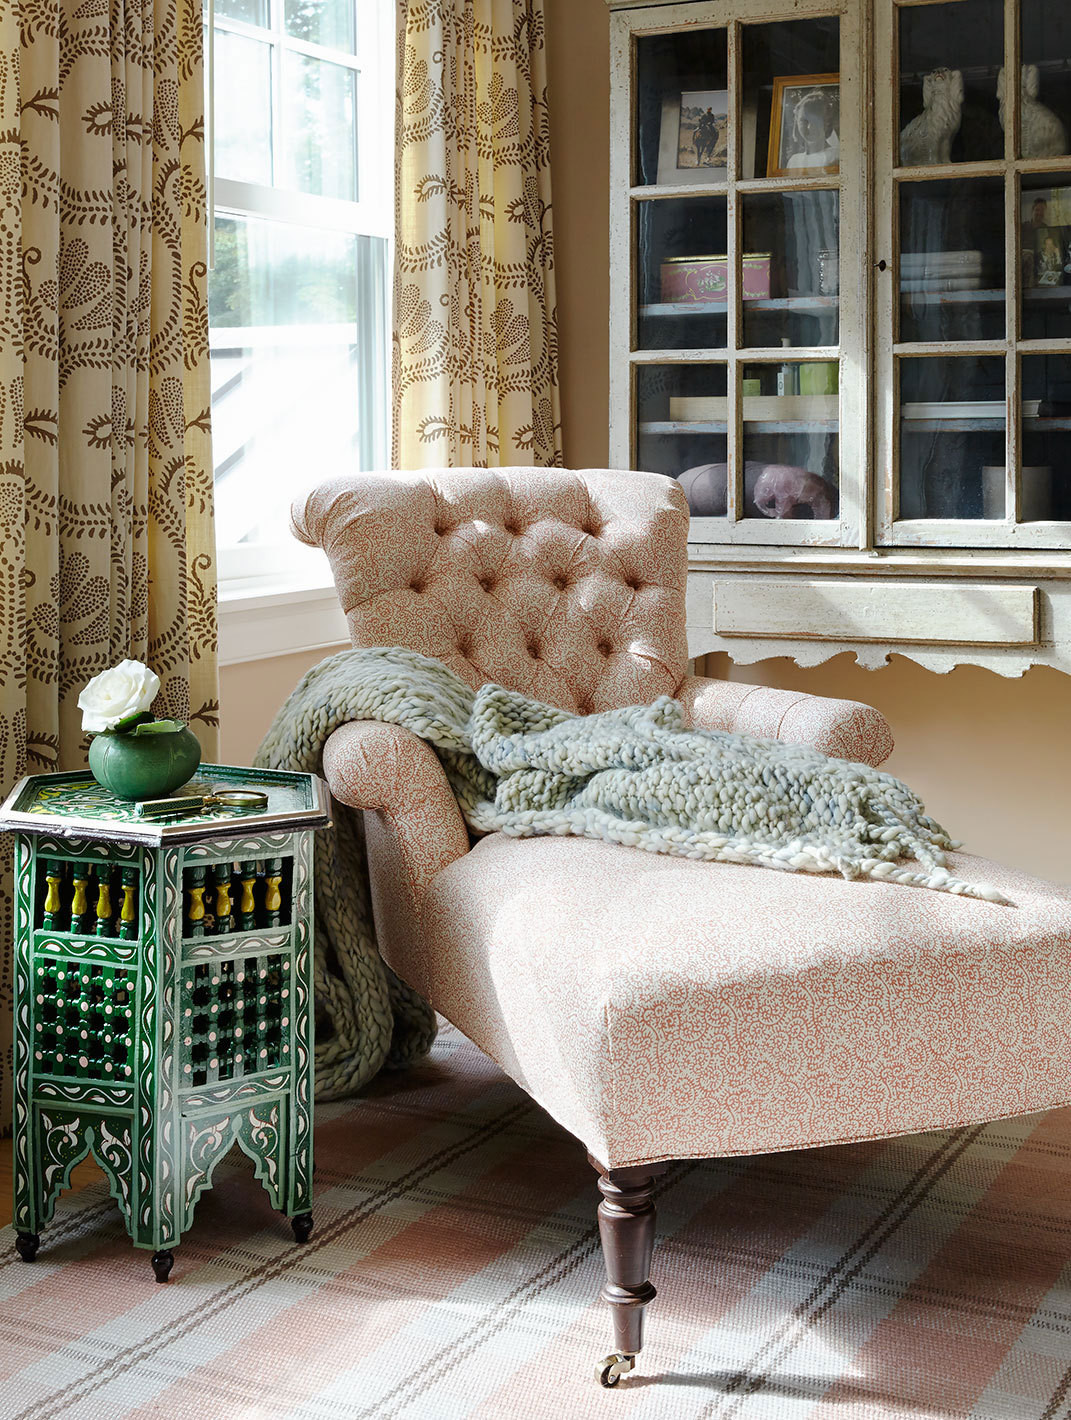 A printed chaise and Moroccan side table animate another corner of the guest room.